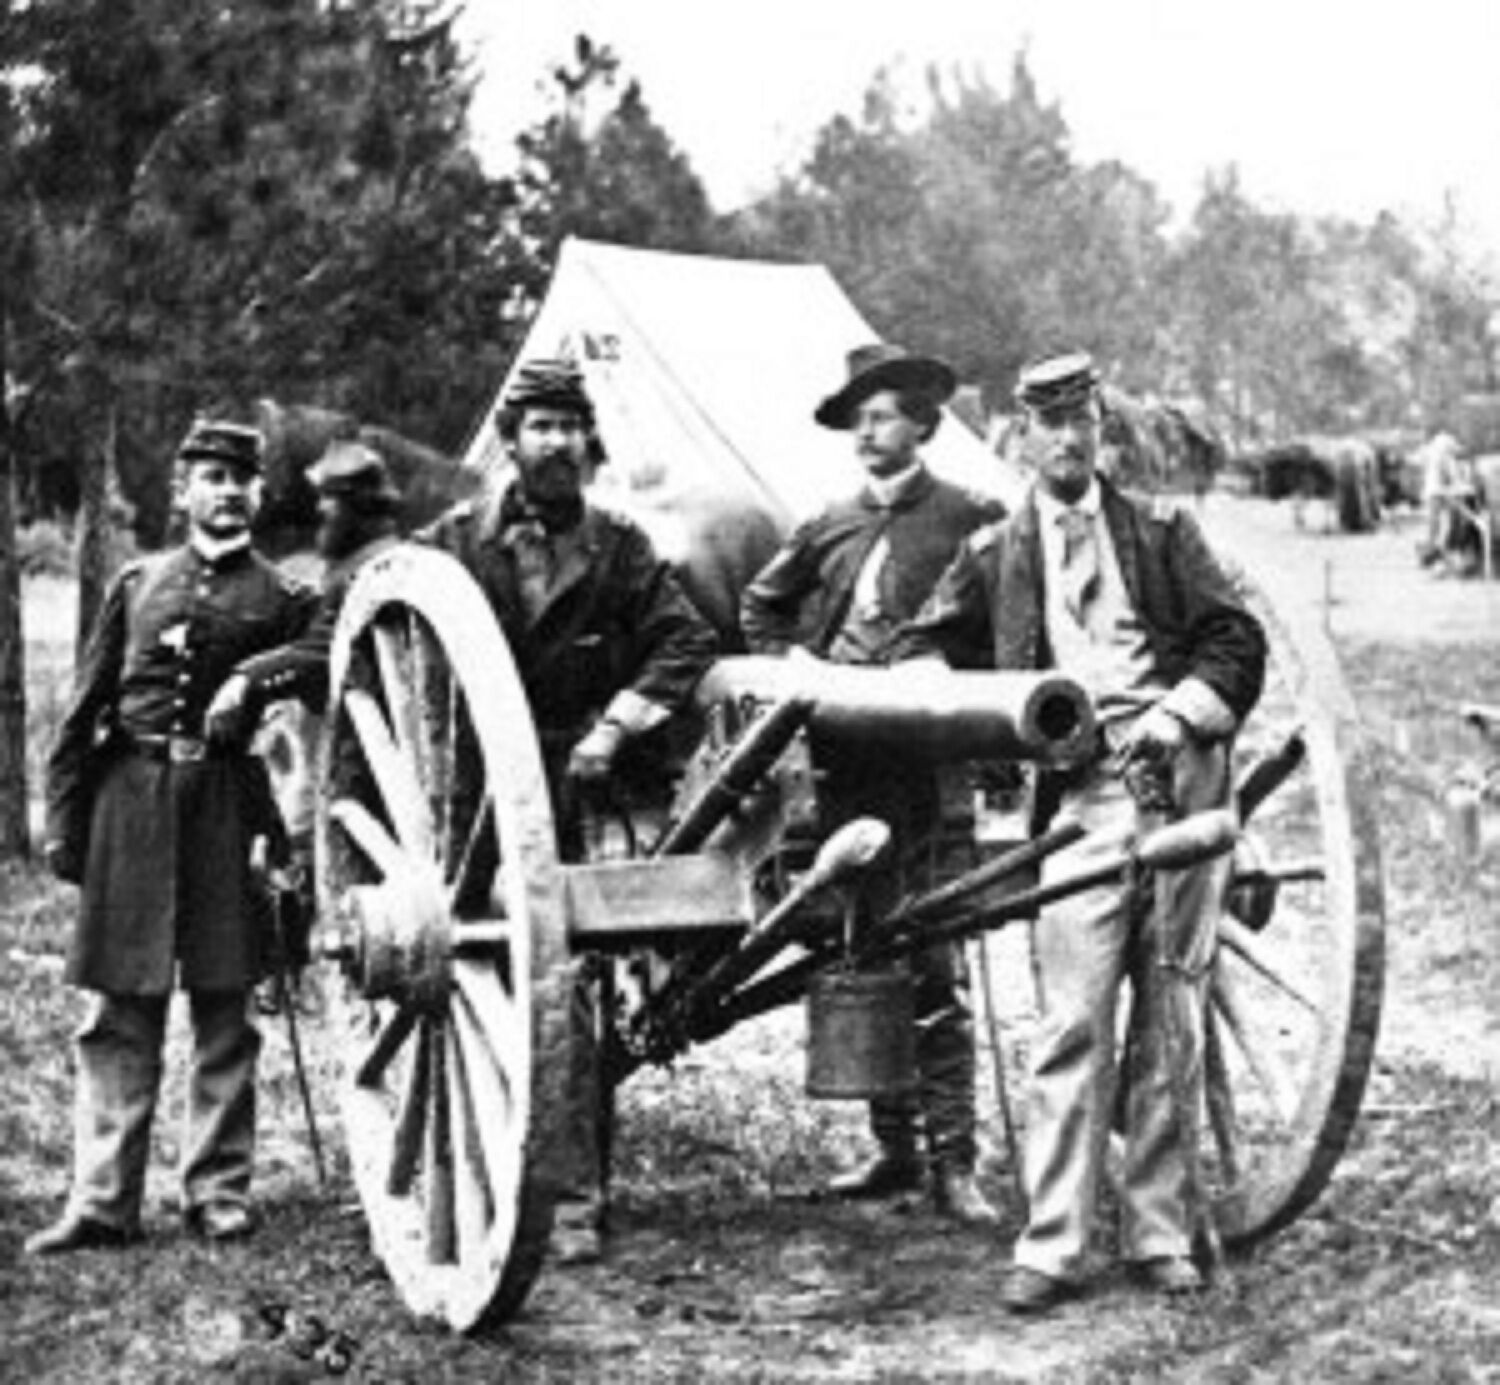 artillery and weapons of the civil war Field artillery in the american civil war refers to the important artillery weapons, equipment, and practices used by the artillery branch to support the infantry and cavalry forces in the field it does not include siege artillery , use of artillery in fixed fortifications, or coastal or naval artillery.